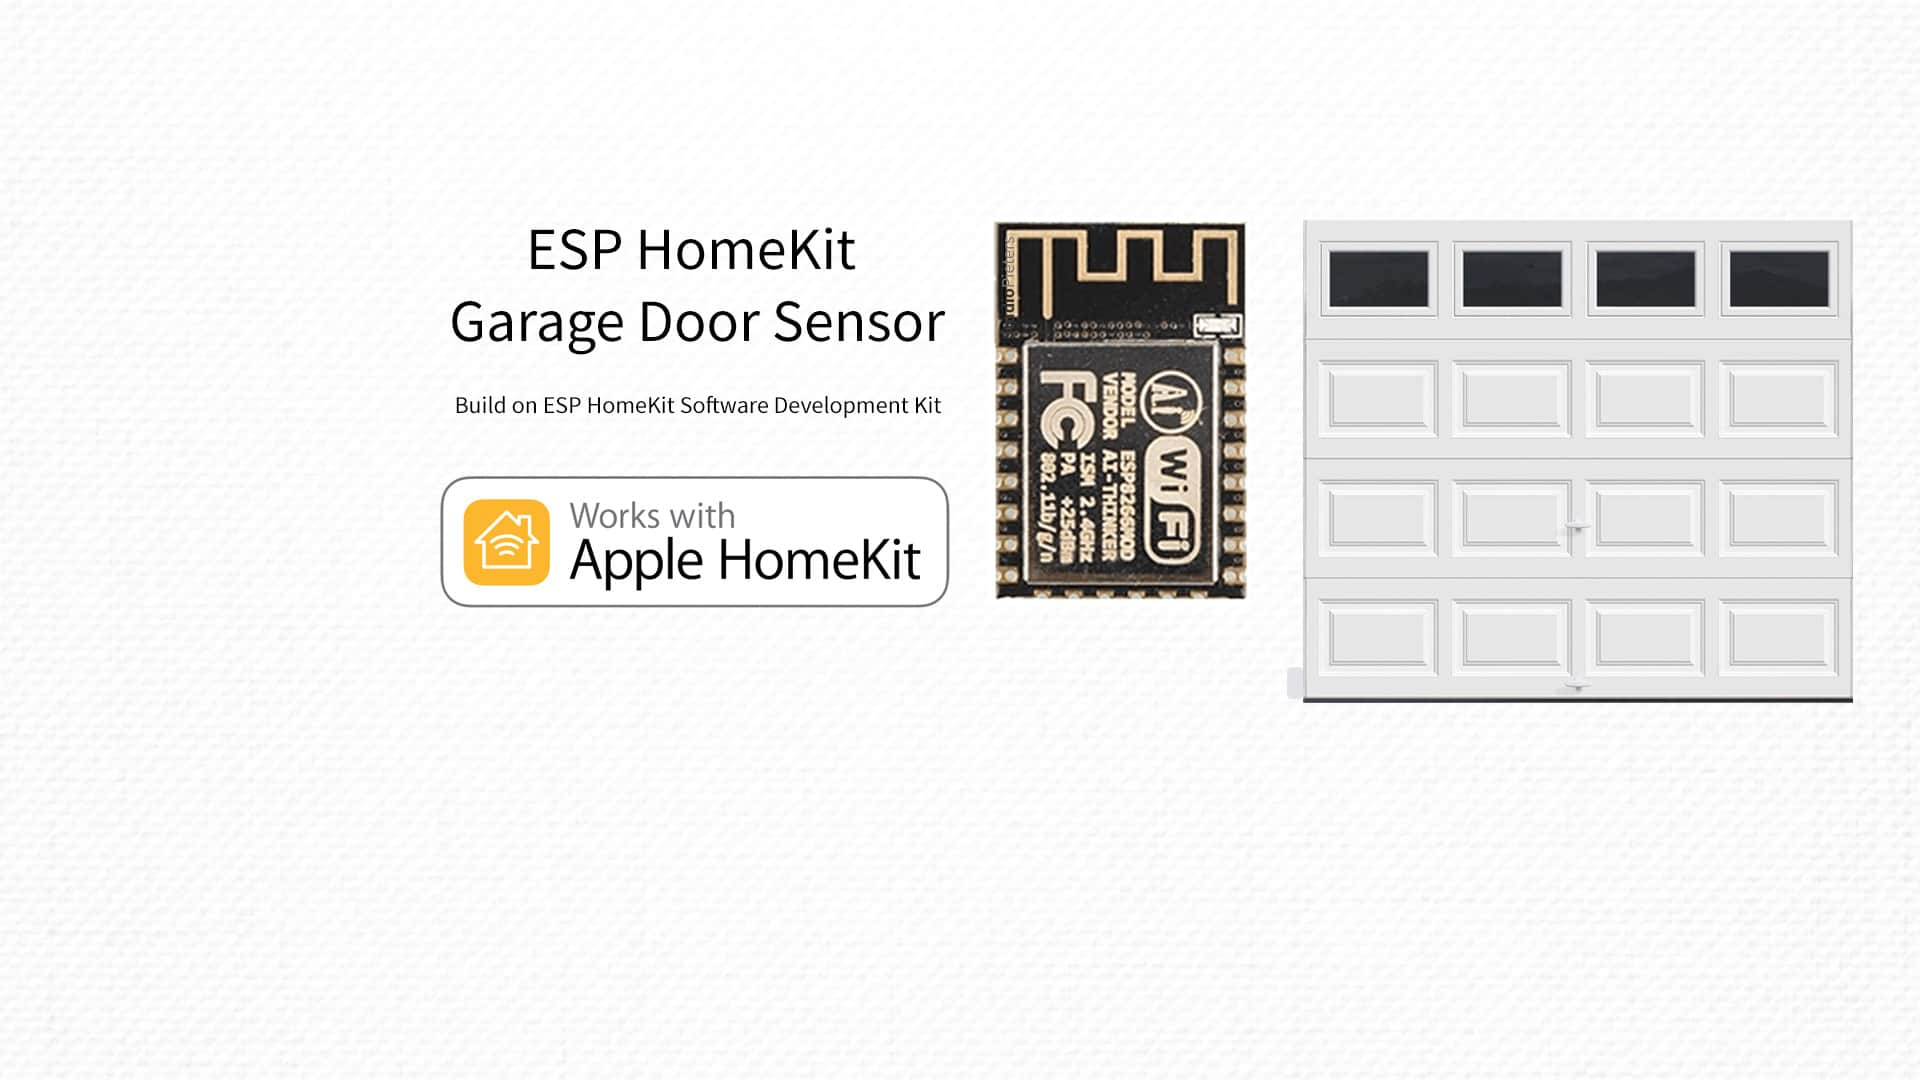 ESP8266 – HomeKit Garage Door Sensor